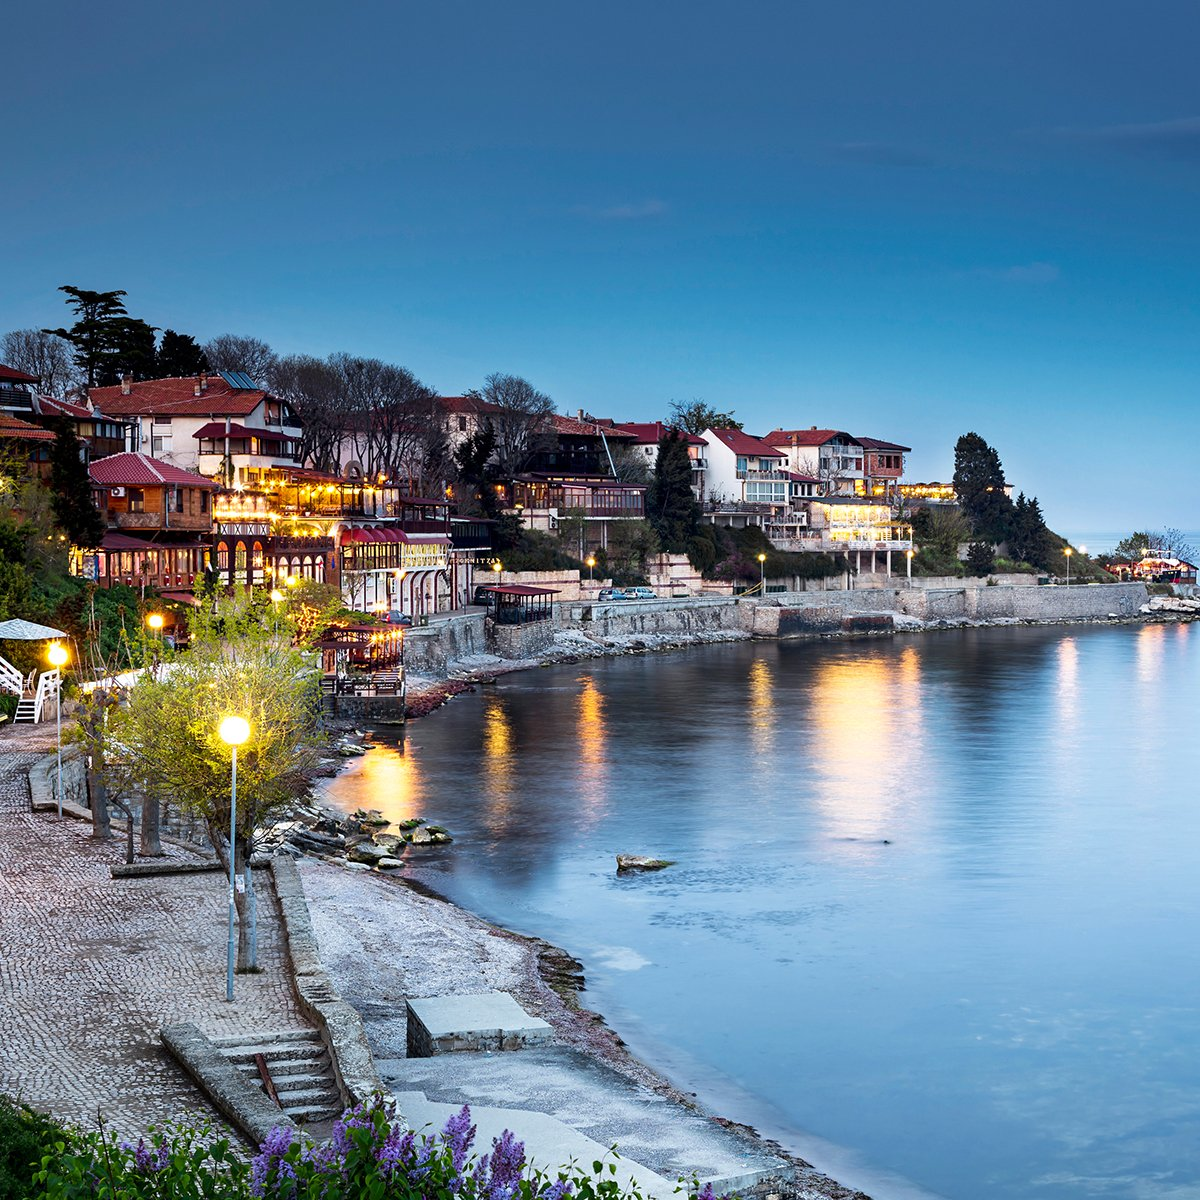 .@BalkanHolidays have last min offers on Aberdeen - Bulgaria on 12 Aug from £325pp. Book now